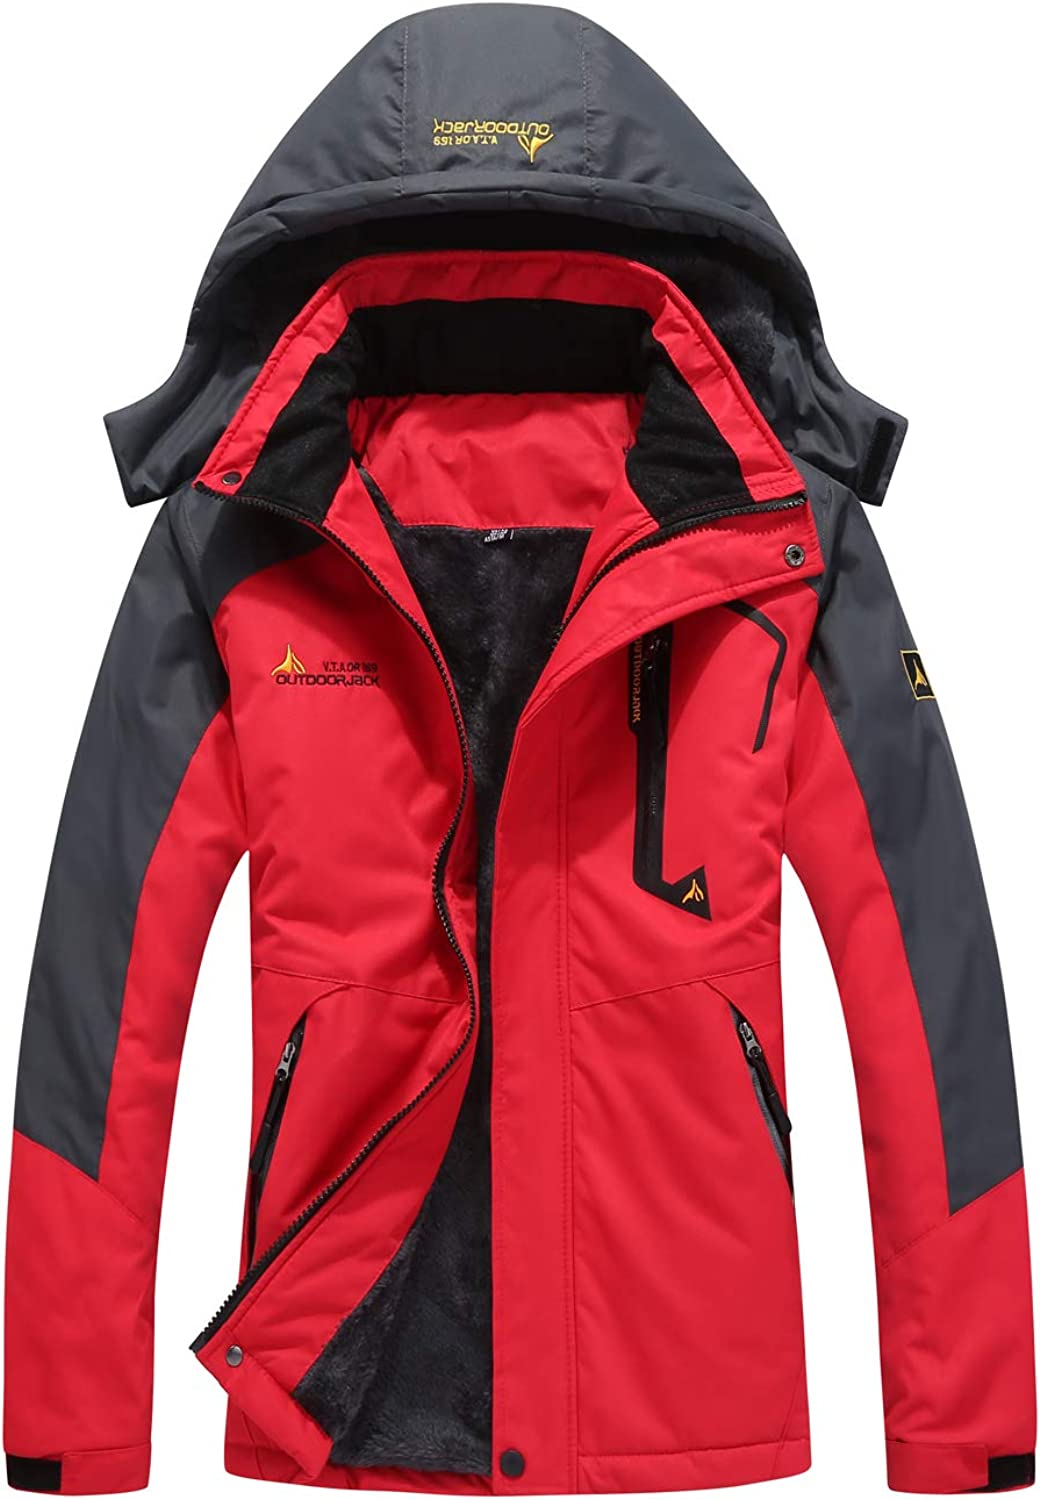 SEFON Women's Waterproof Outdoor Mountain Ski Camping Jacket Sport Outerwear Windproof Rain Jacket